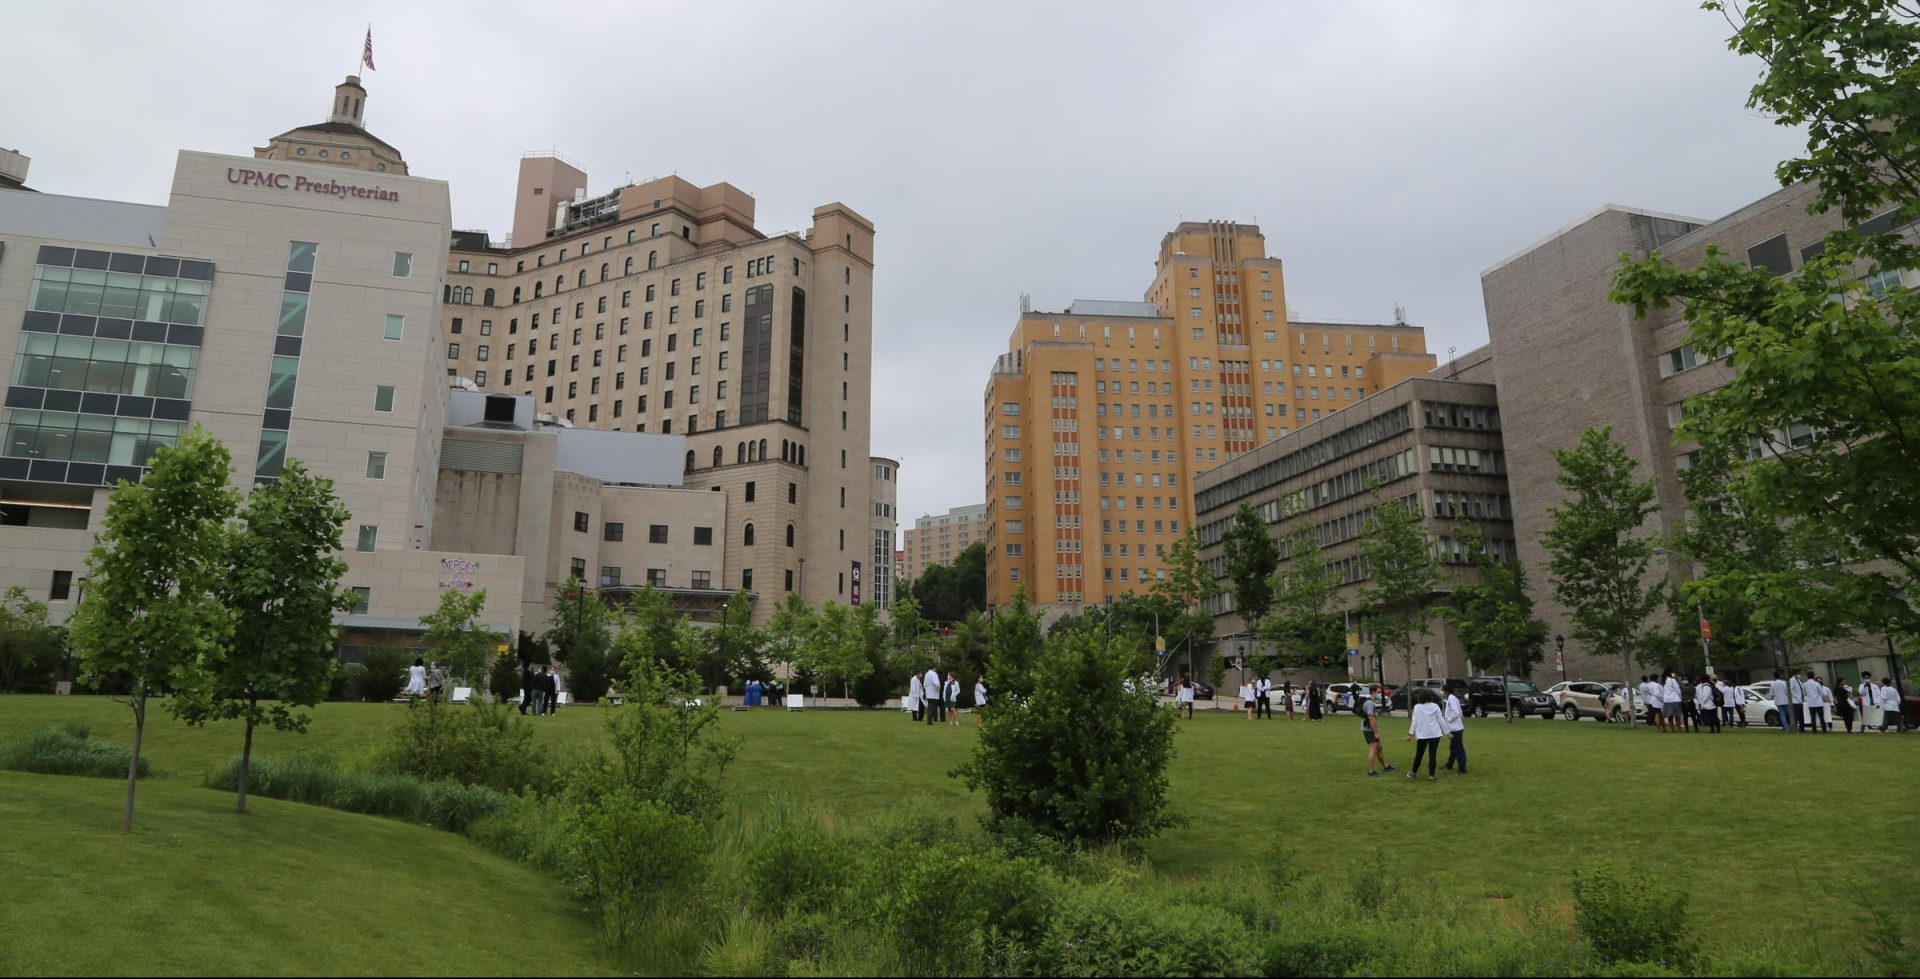 Health care workers socialize on the lawn outside UPMC Presbyterian Hospital in Pittsburgh.